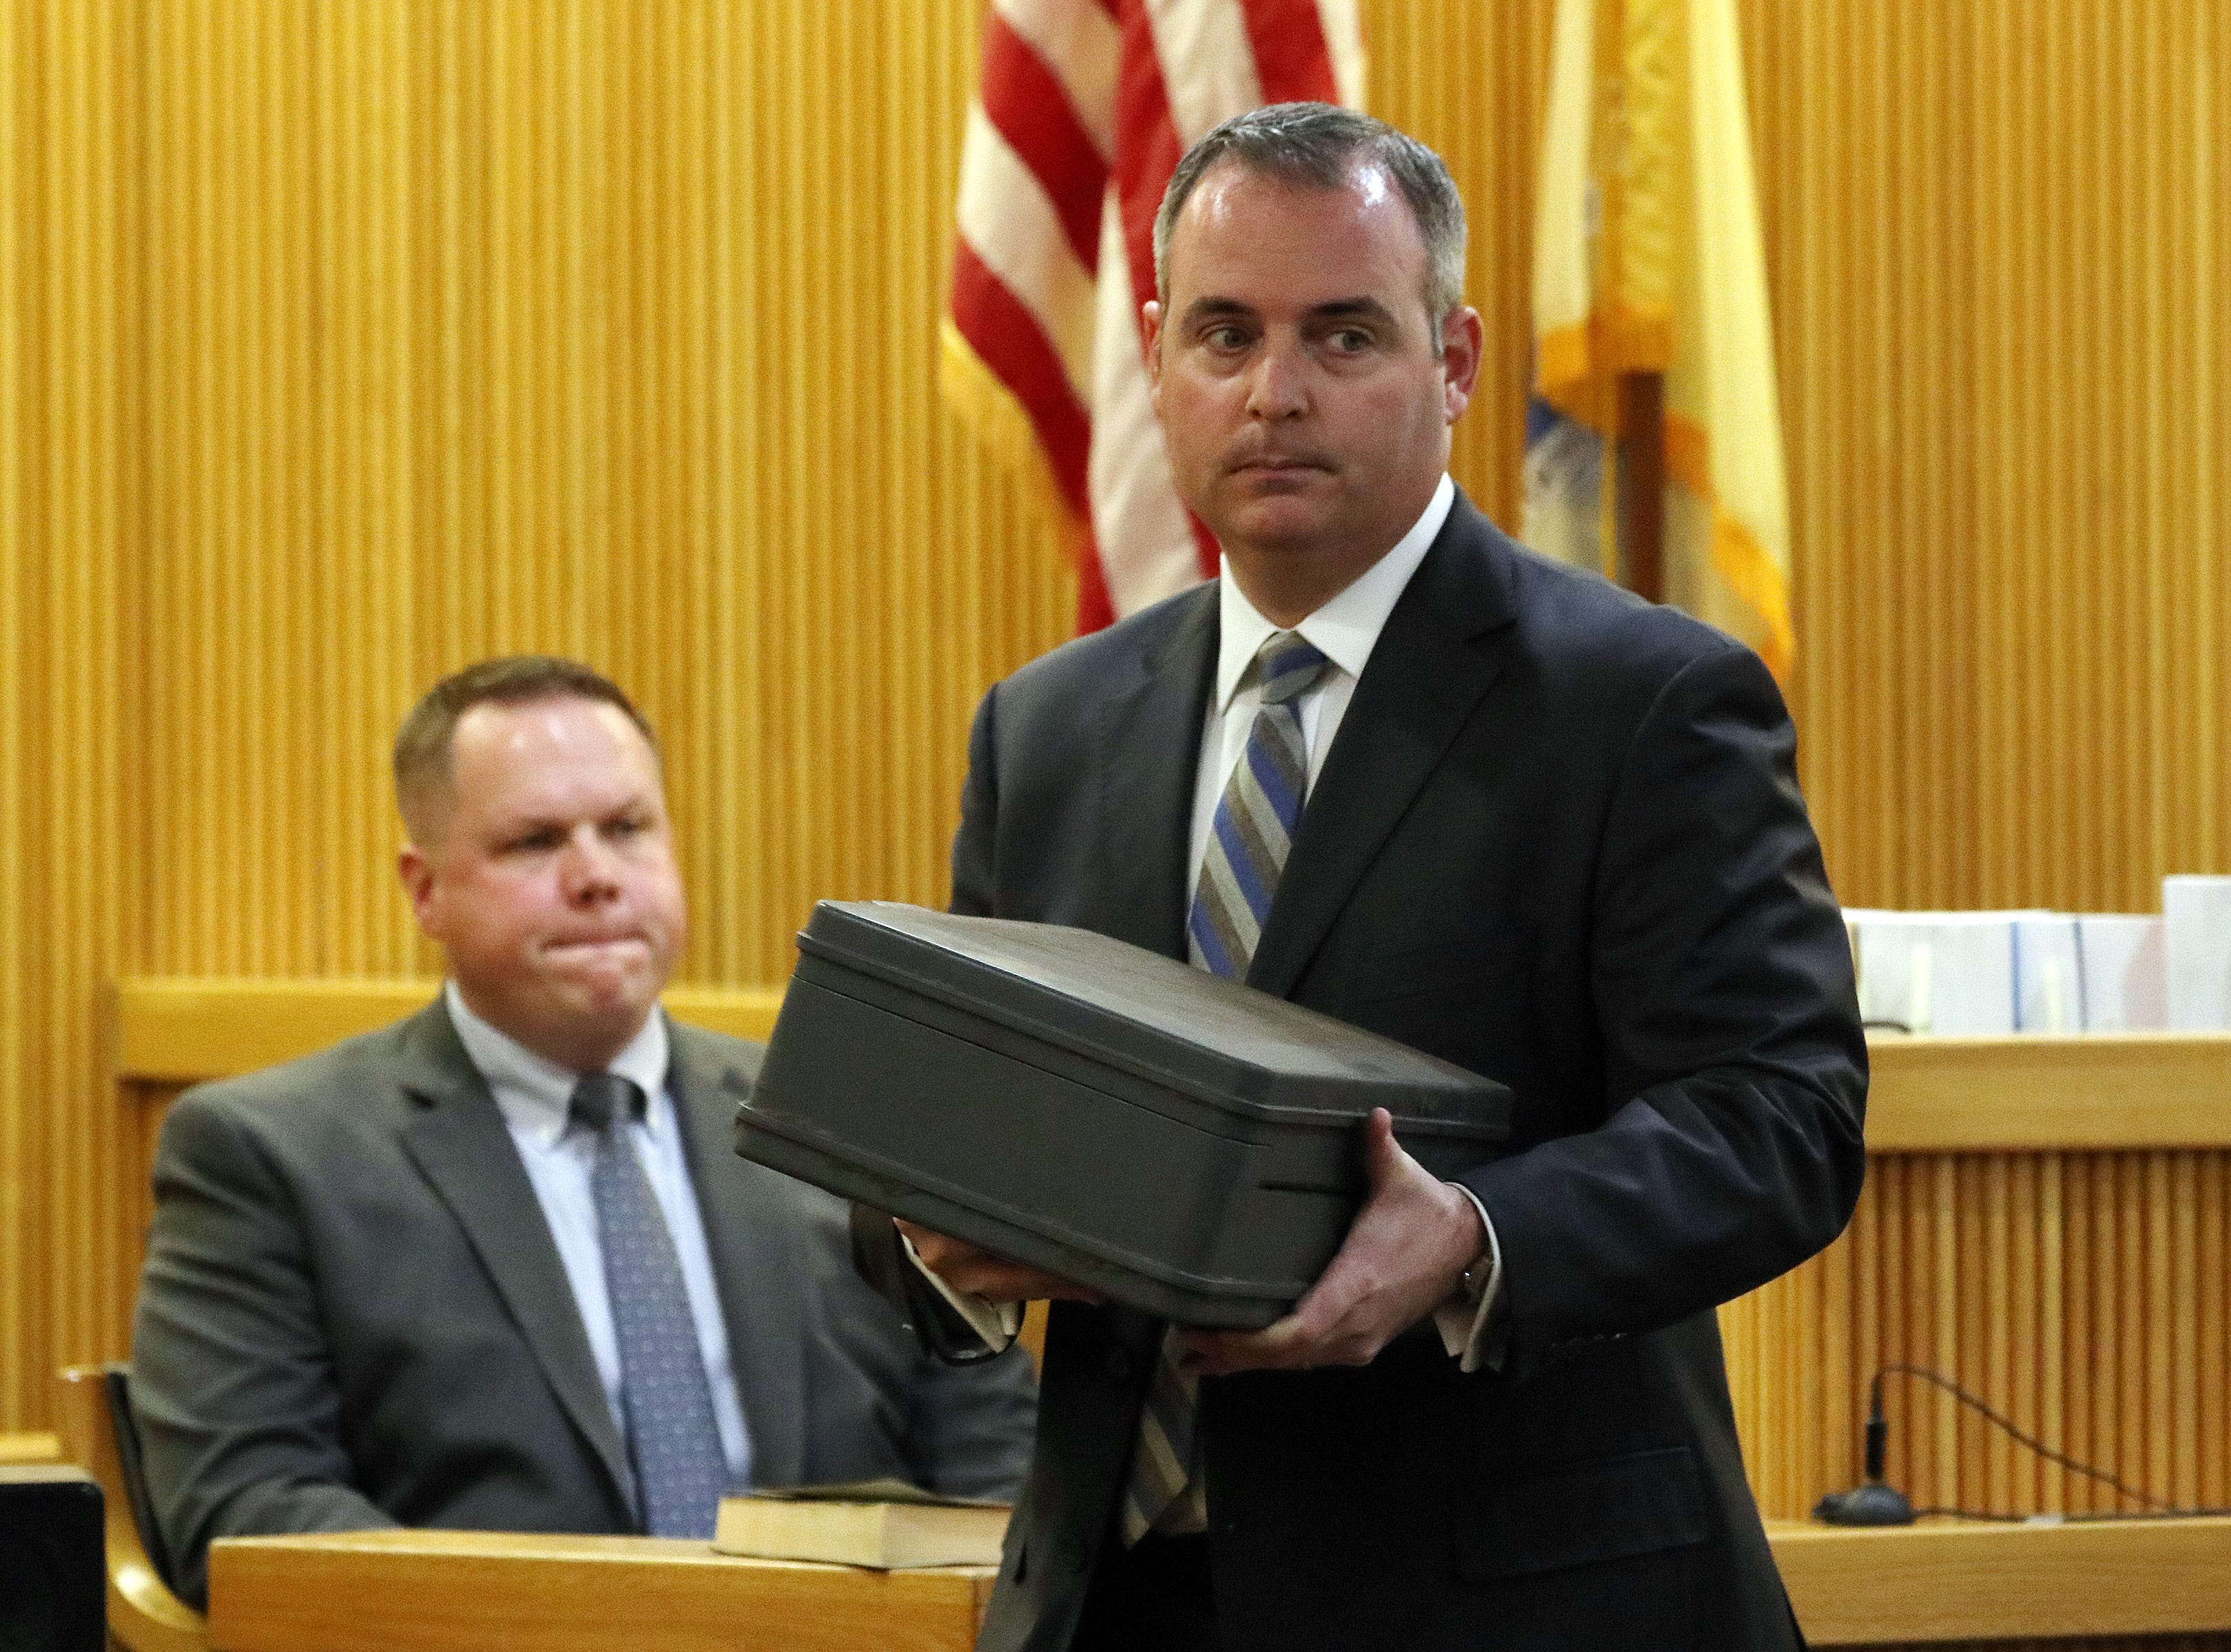 Christopher Decker, Monmouth County assistant prosecutor, asks Detective SGT Ryan Muller of the Monmouth County Prosecutor's Office, to identify Sarah Stern's safe, which was found in Shark River Park, as he testifies during the trial of Liam McAtasney, who is charged with the murder of former high school classmate, Sarah Stern, before Superior Court Judge Richard W. English at the Monmouth County Courthouse in Freehold, NJ Wednesday, February 6, 2019.